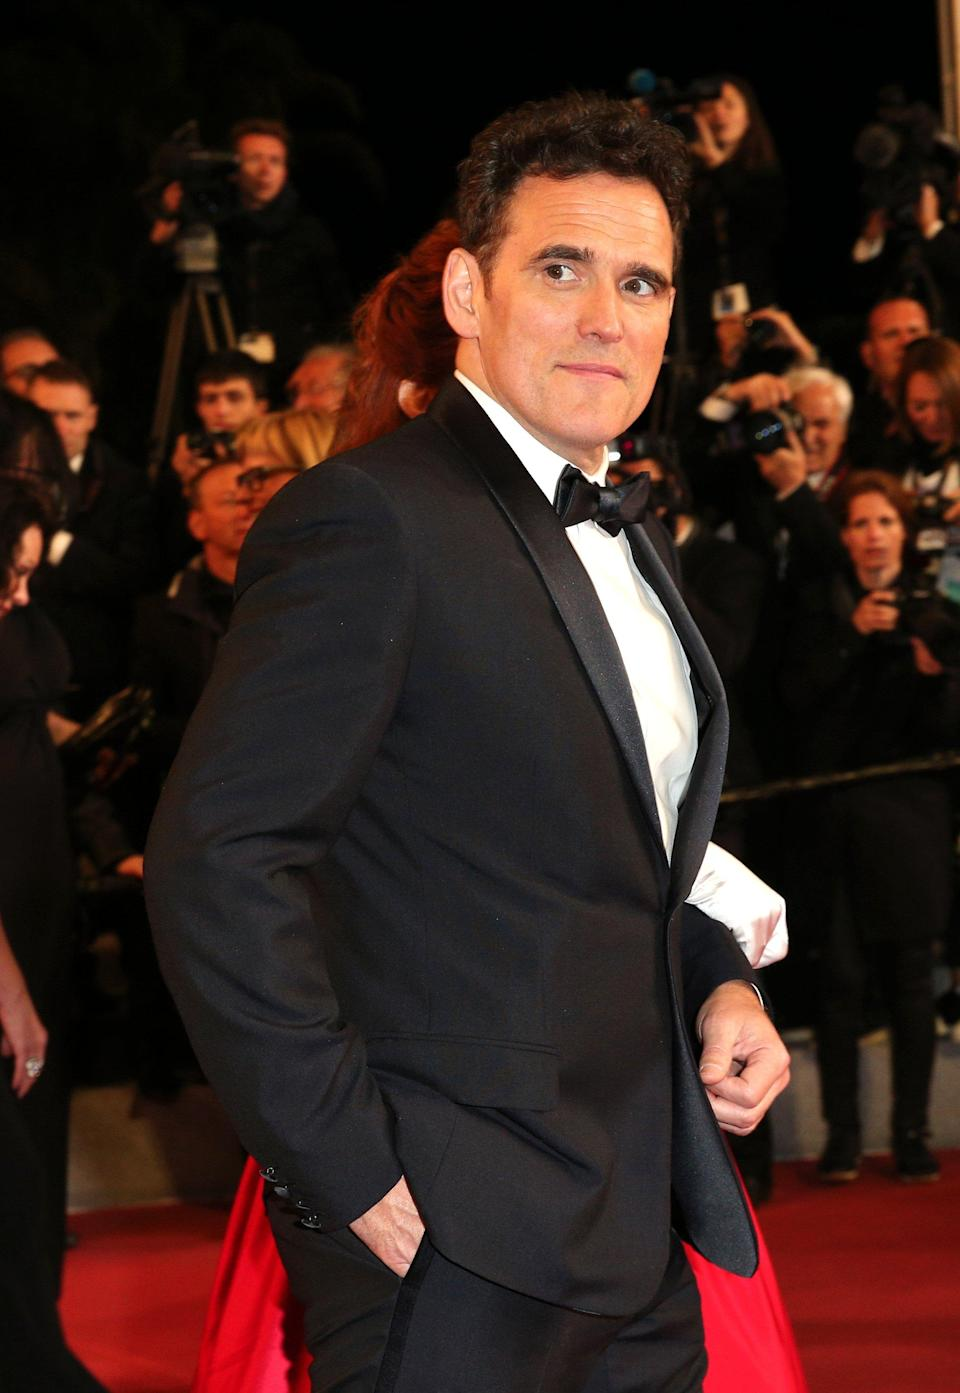 <p>Since his role as Pat Healy, Dillon has starred in several well-known films, such as <strong>Crash</strong>, <strong>You, Me and Dupree</strong>, and, most recently, <strong>The House That Jack Built</strong>. </p>